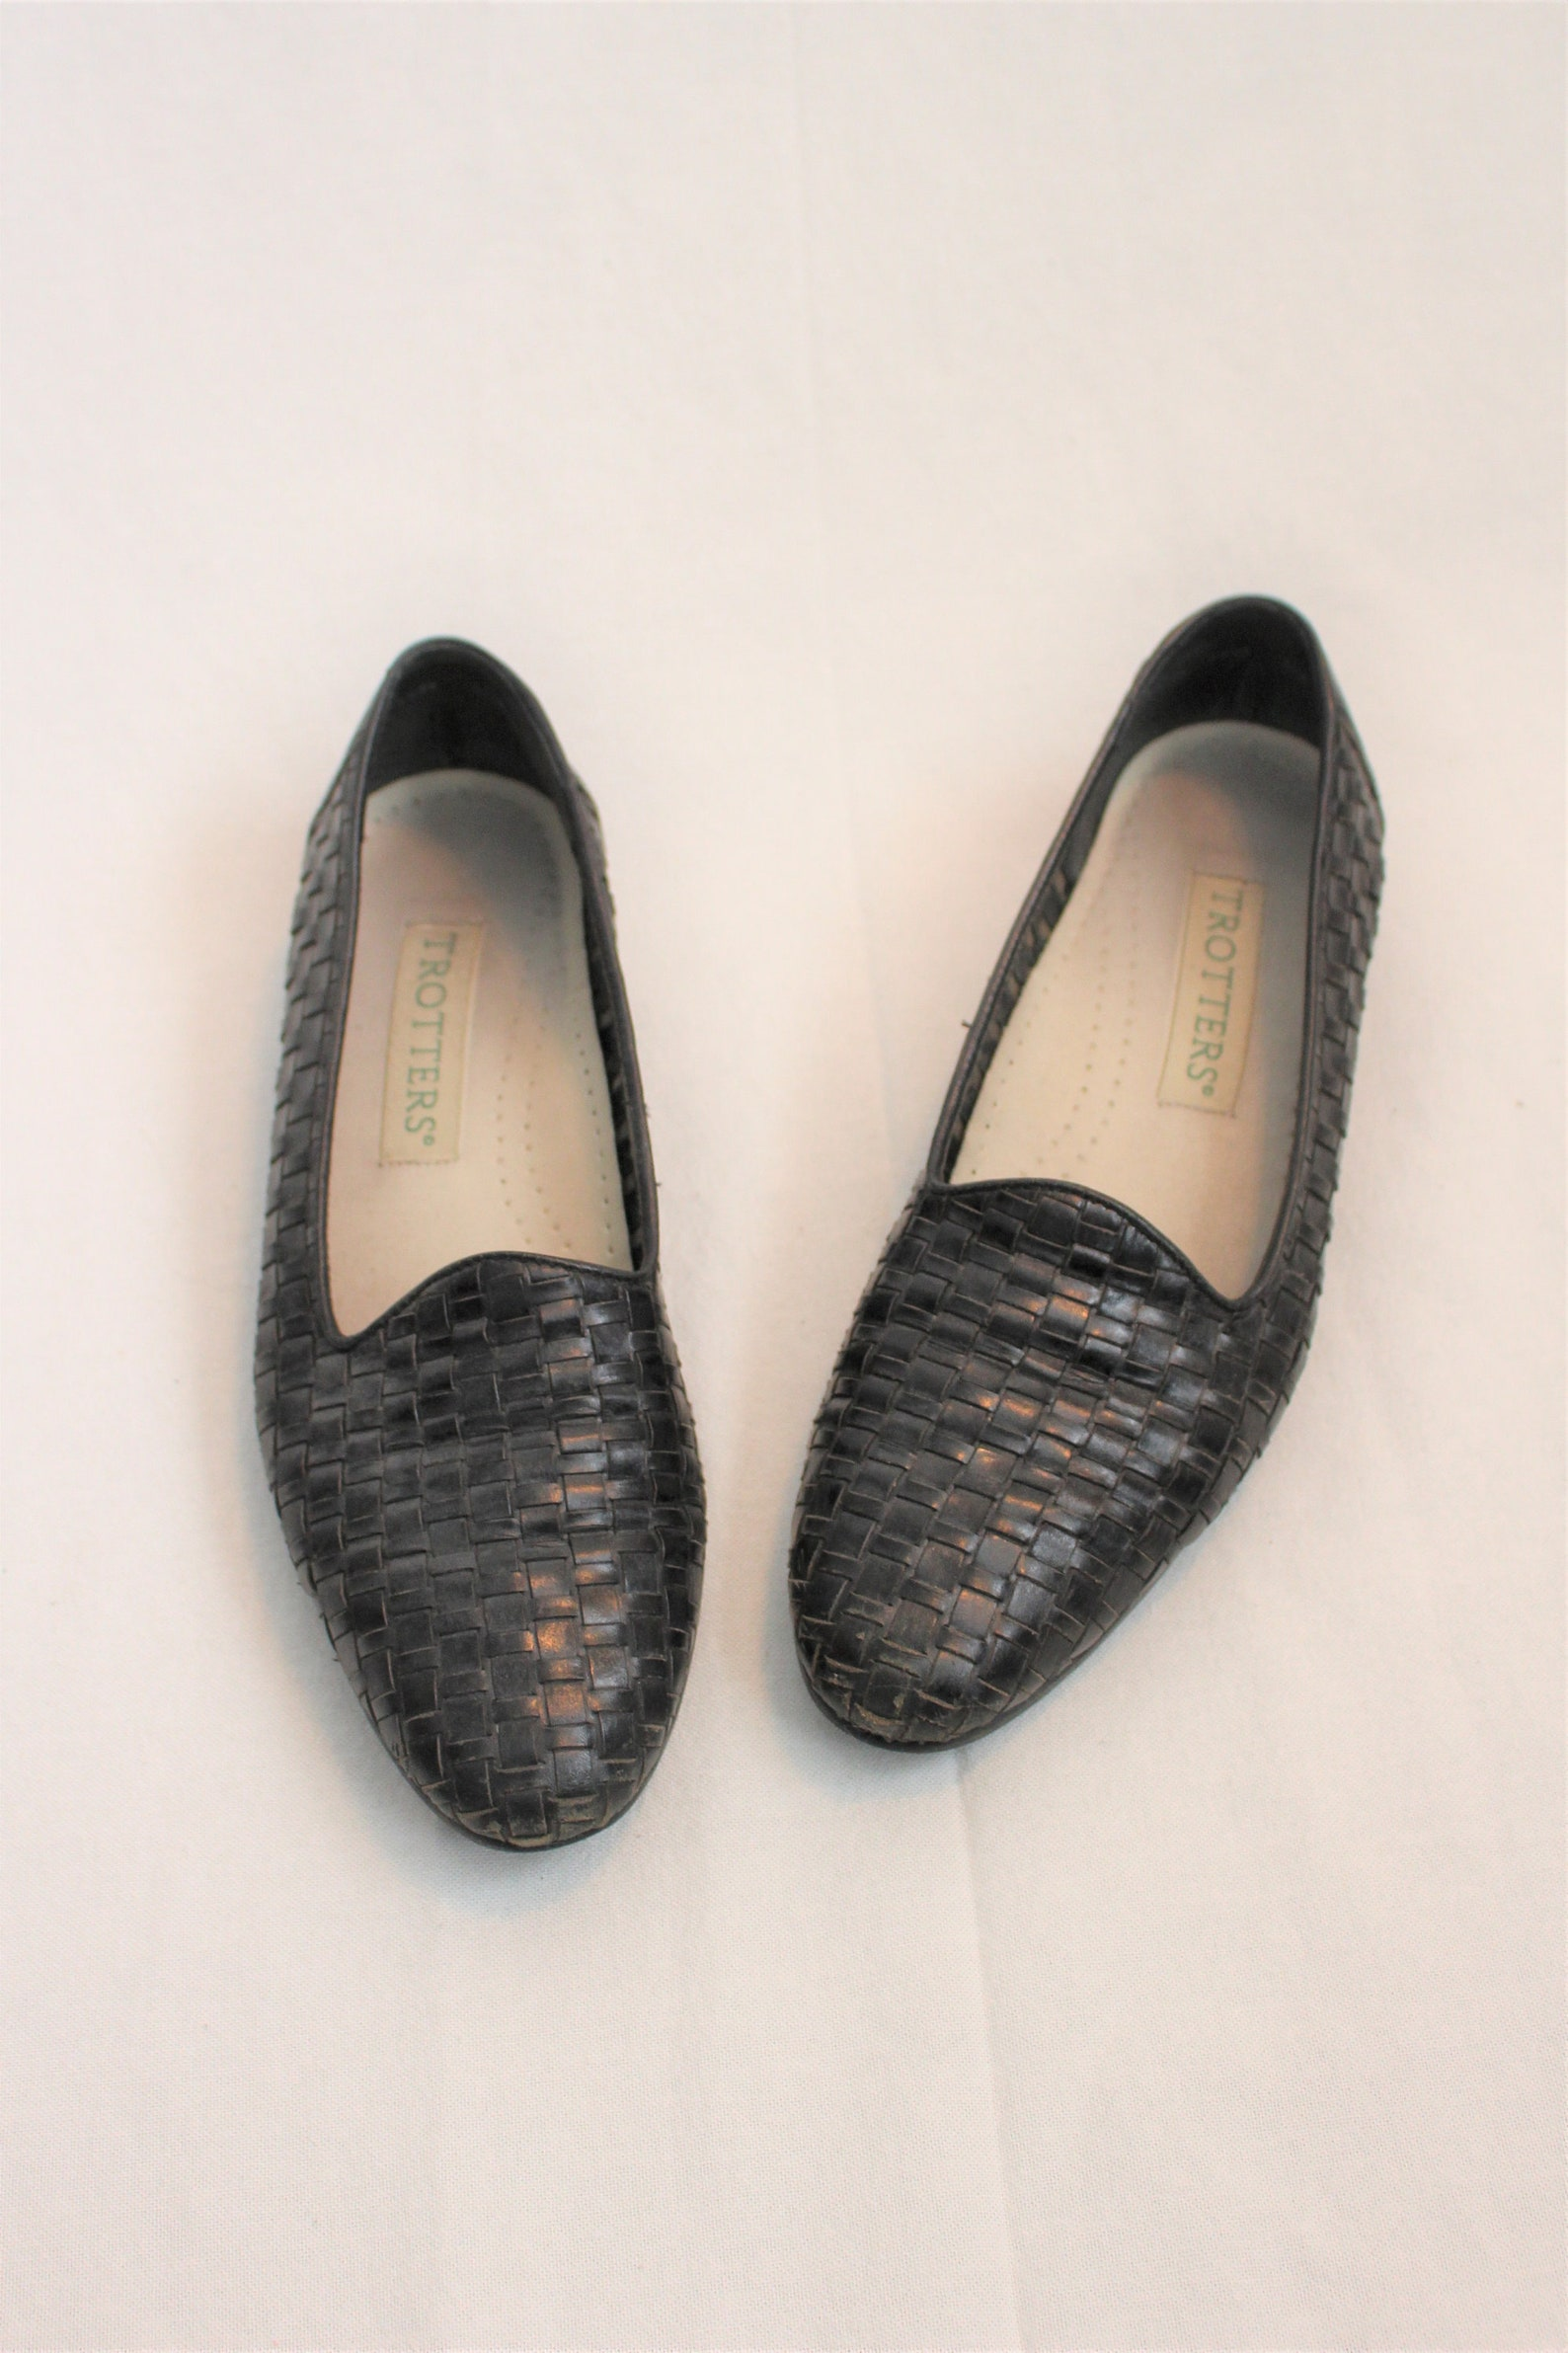 black woven leather loafers 90s minimalist slip on shoes ballet slippers size 7